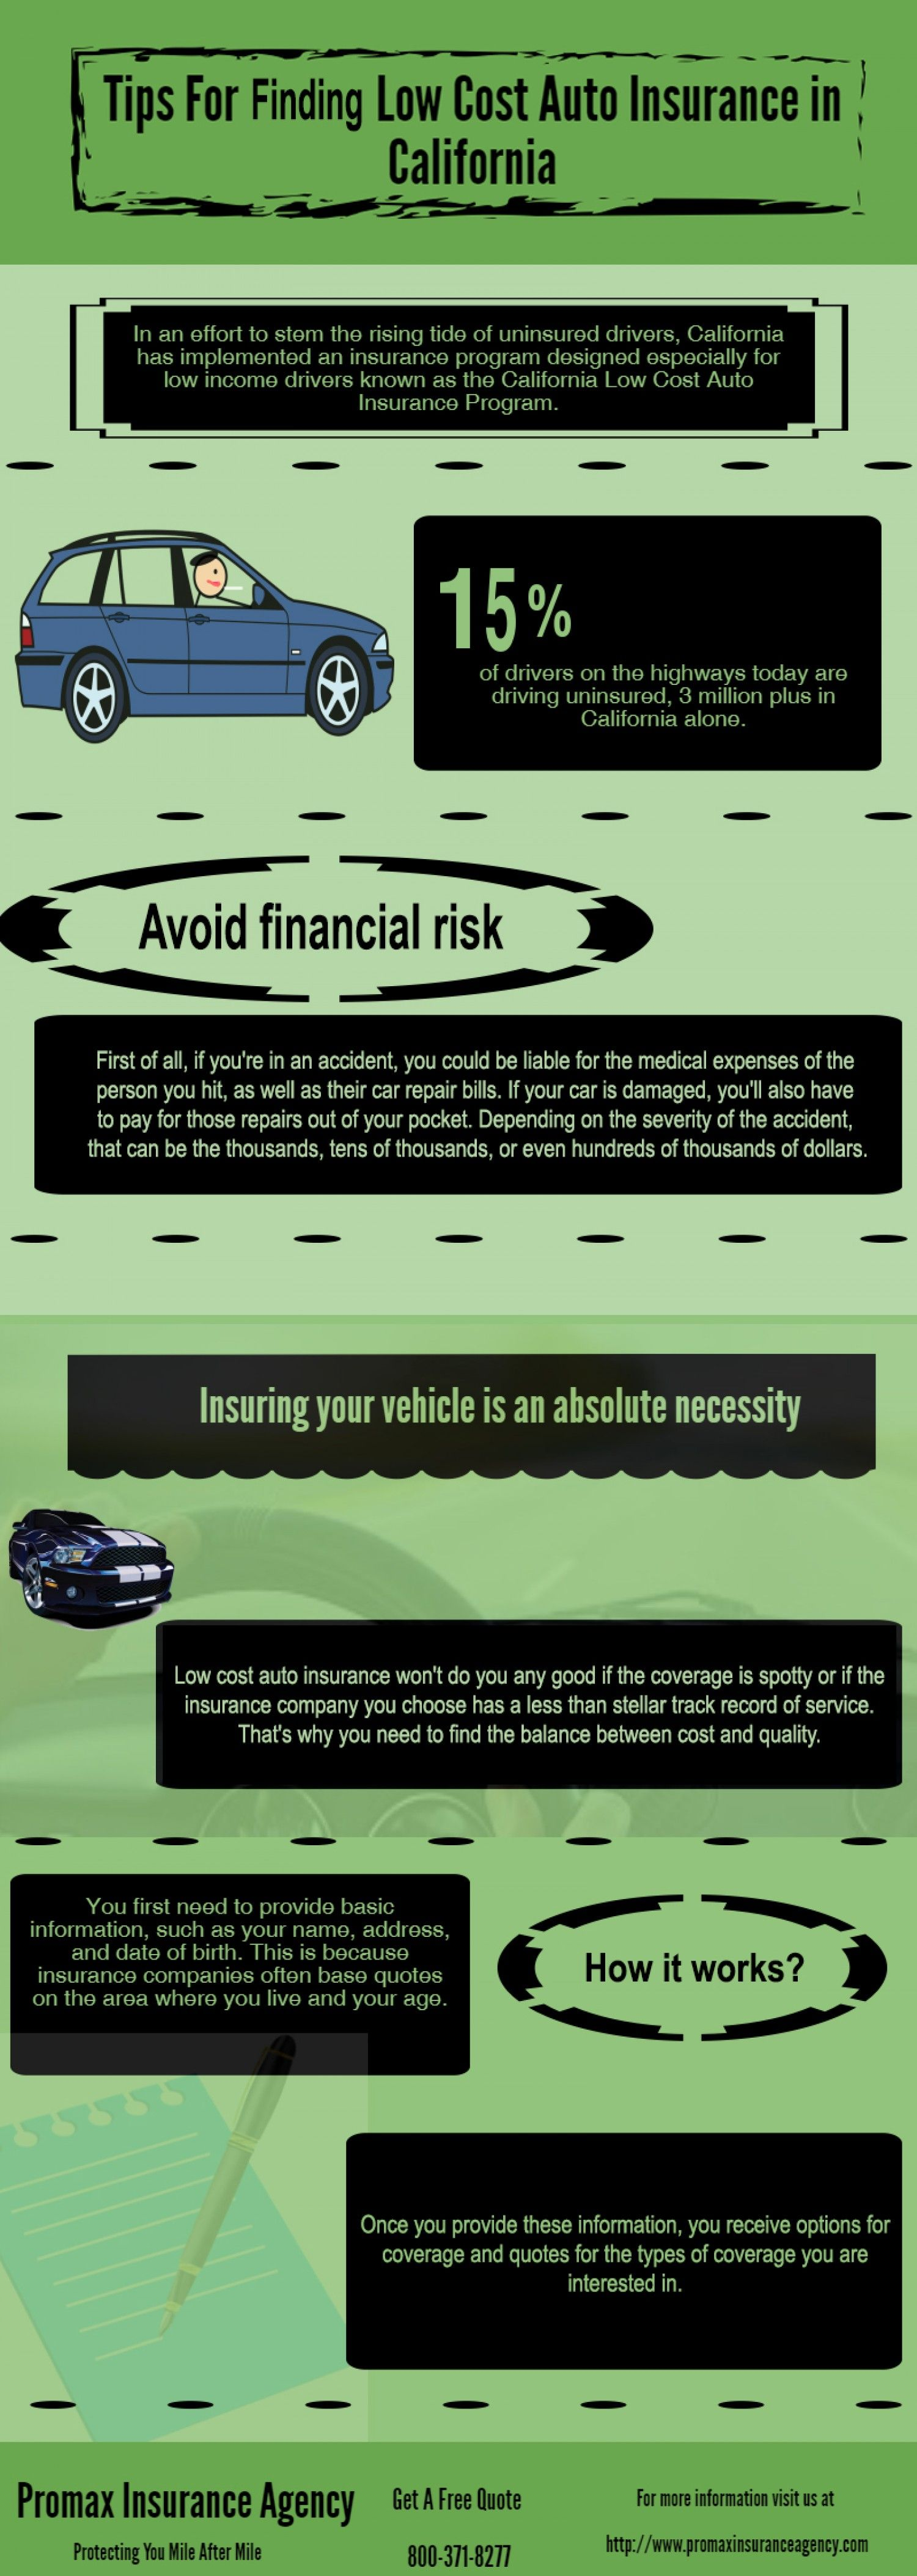 The General Car Insurance Quotes Mesmerizing Low Cost Auto Insurance In California Infographic . Design Ideas